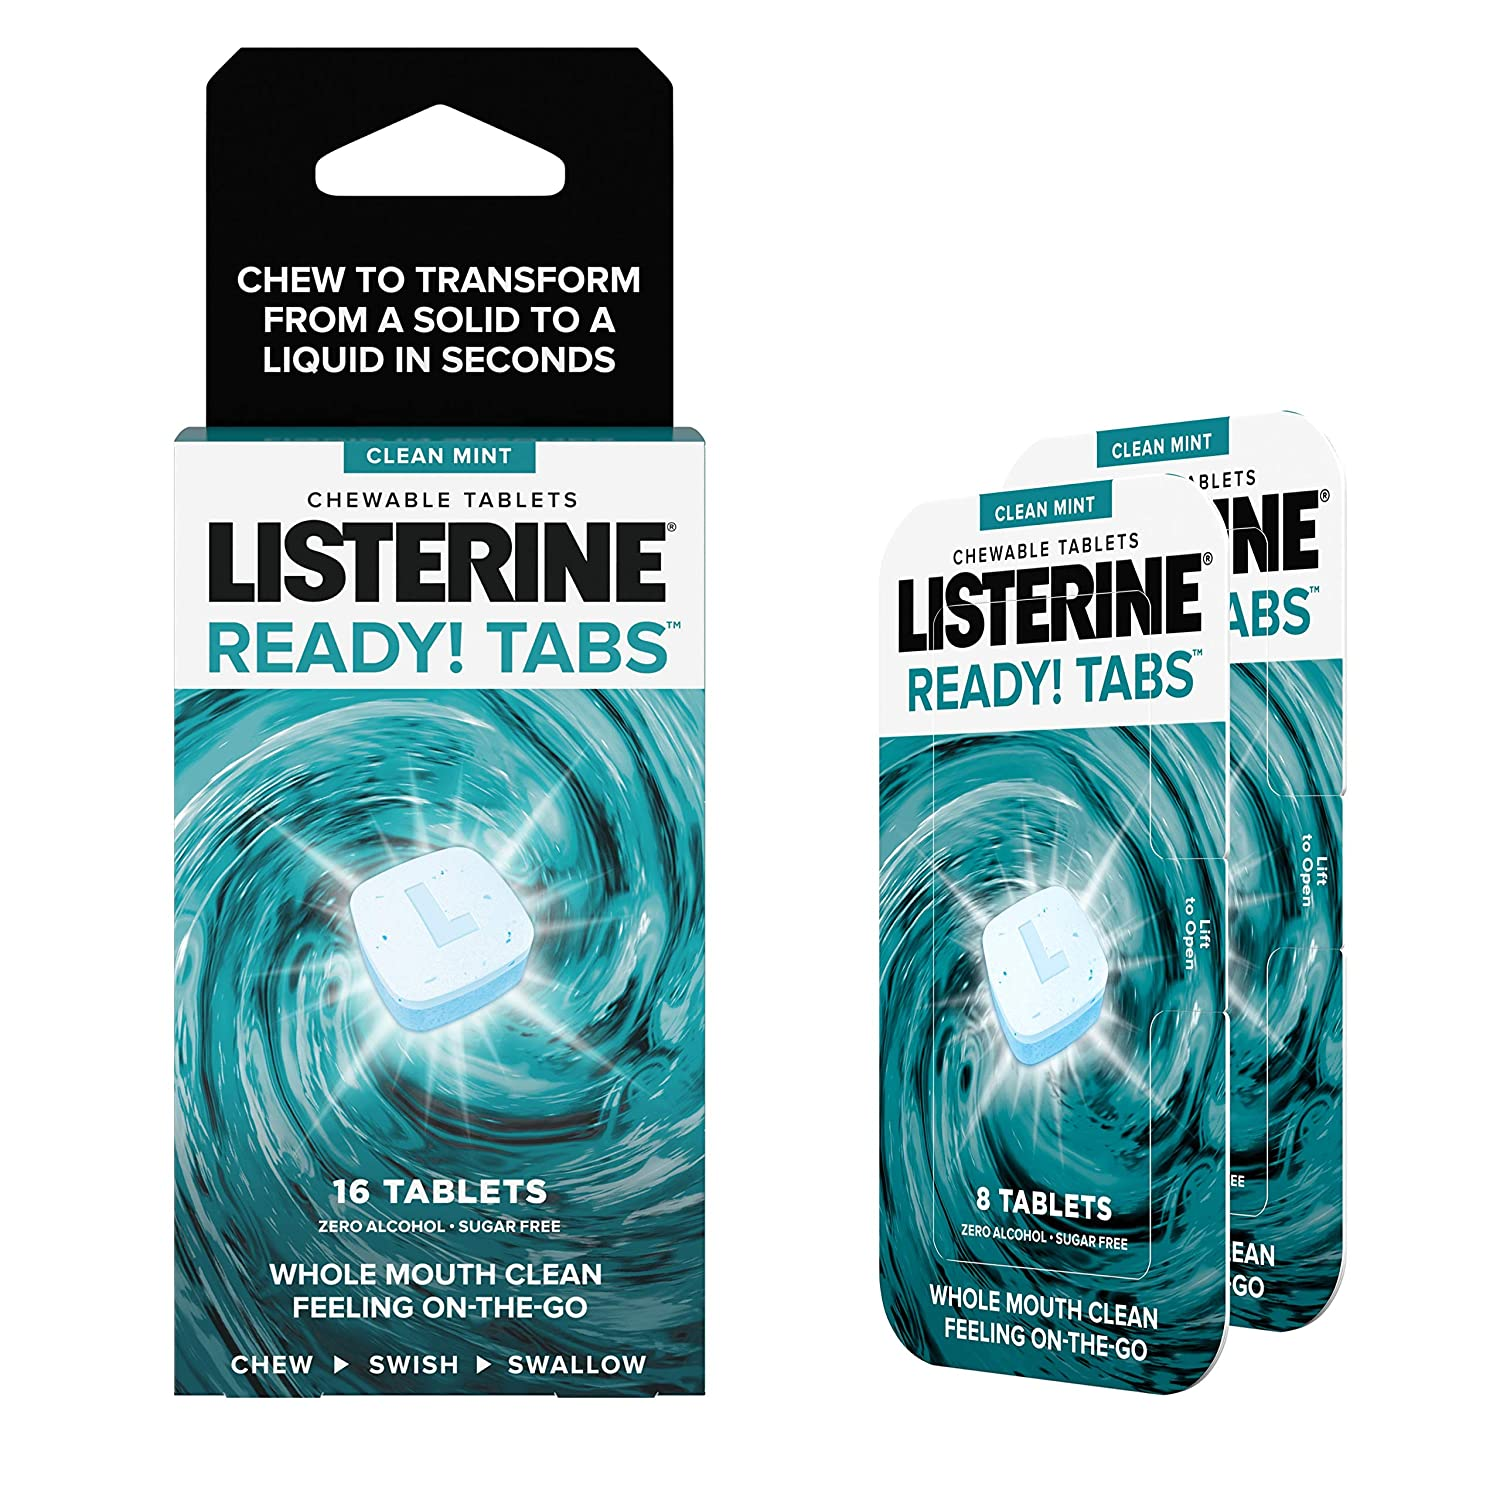 Listerine Ready! Tabs Chewable Tablets with Clean Mint Flavor, Revolutionary 4-Hour Fresh Breath Tablets to Help Fight Bad Breath On-the-Go, Sugar-Free & Alcohol-Free & Kosher, 16 ct